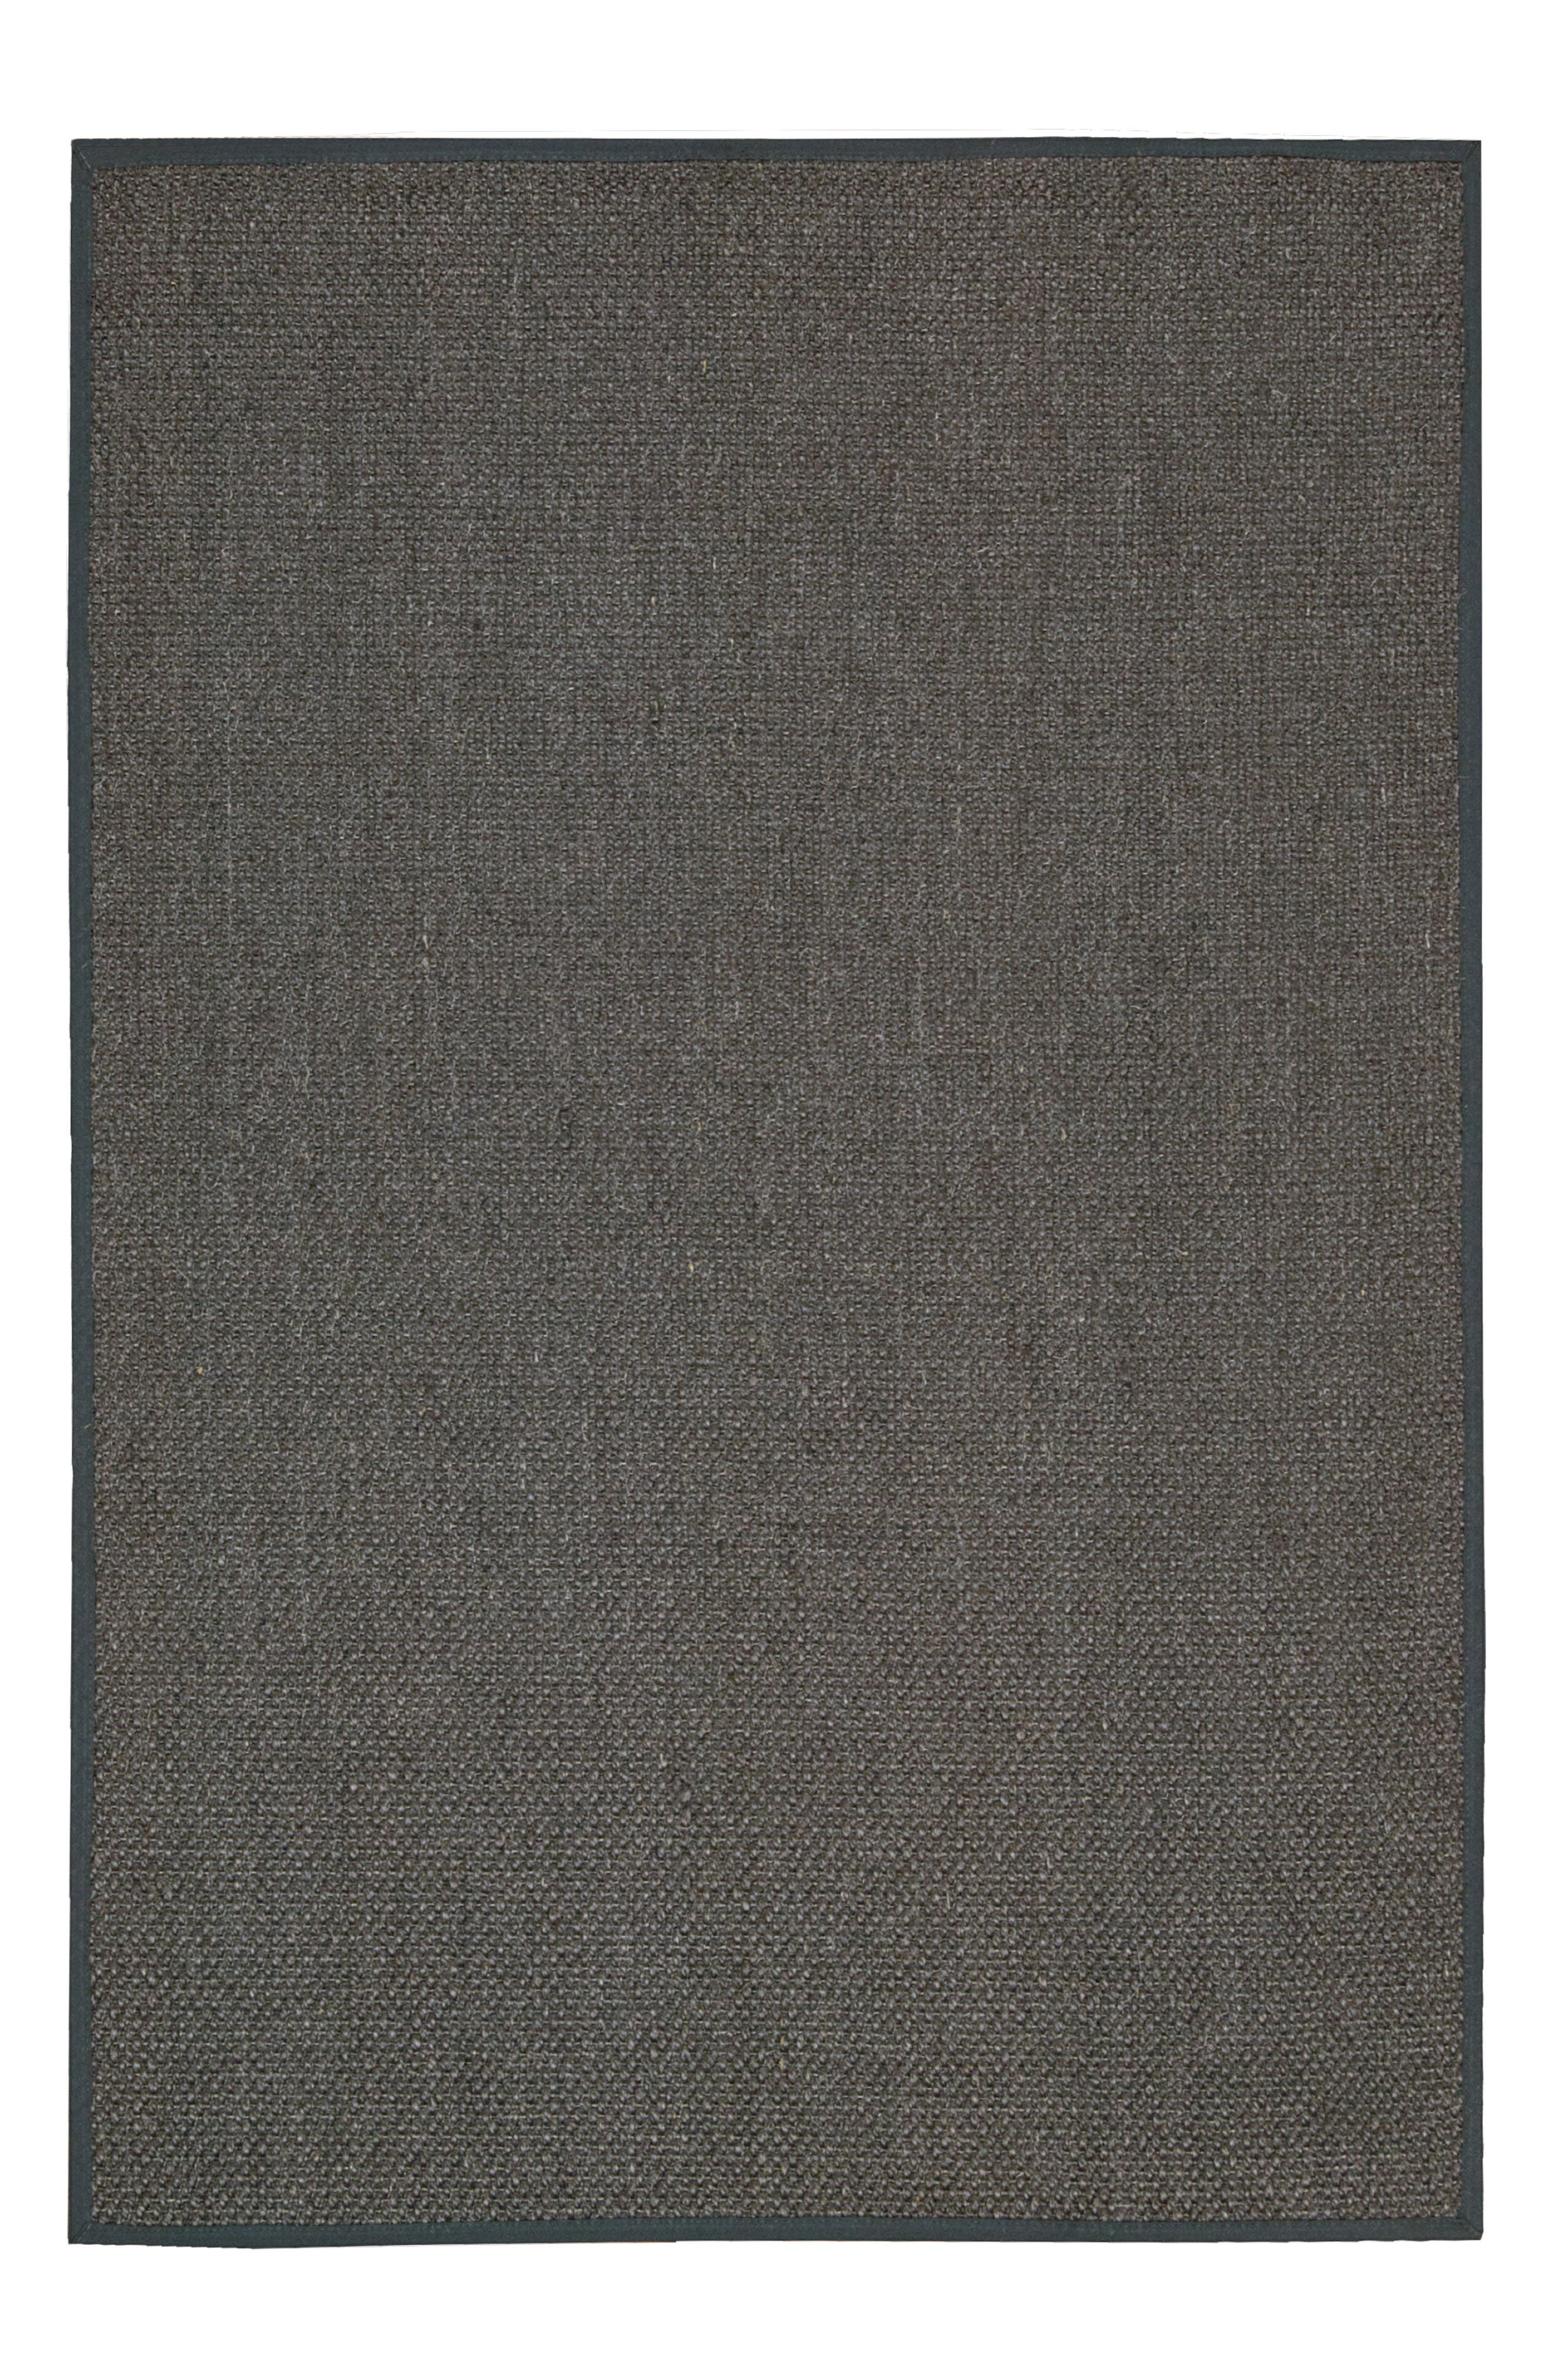 Kerala Java Sisal Area Rug,                             Main thumbnail 1, color,                             Charcoal